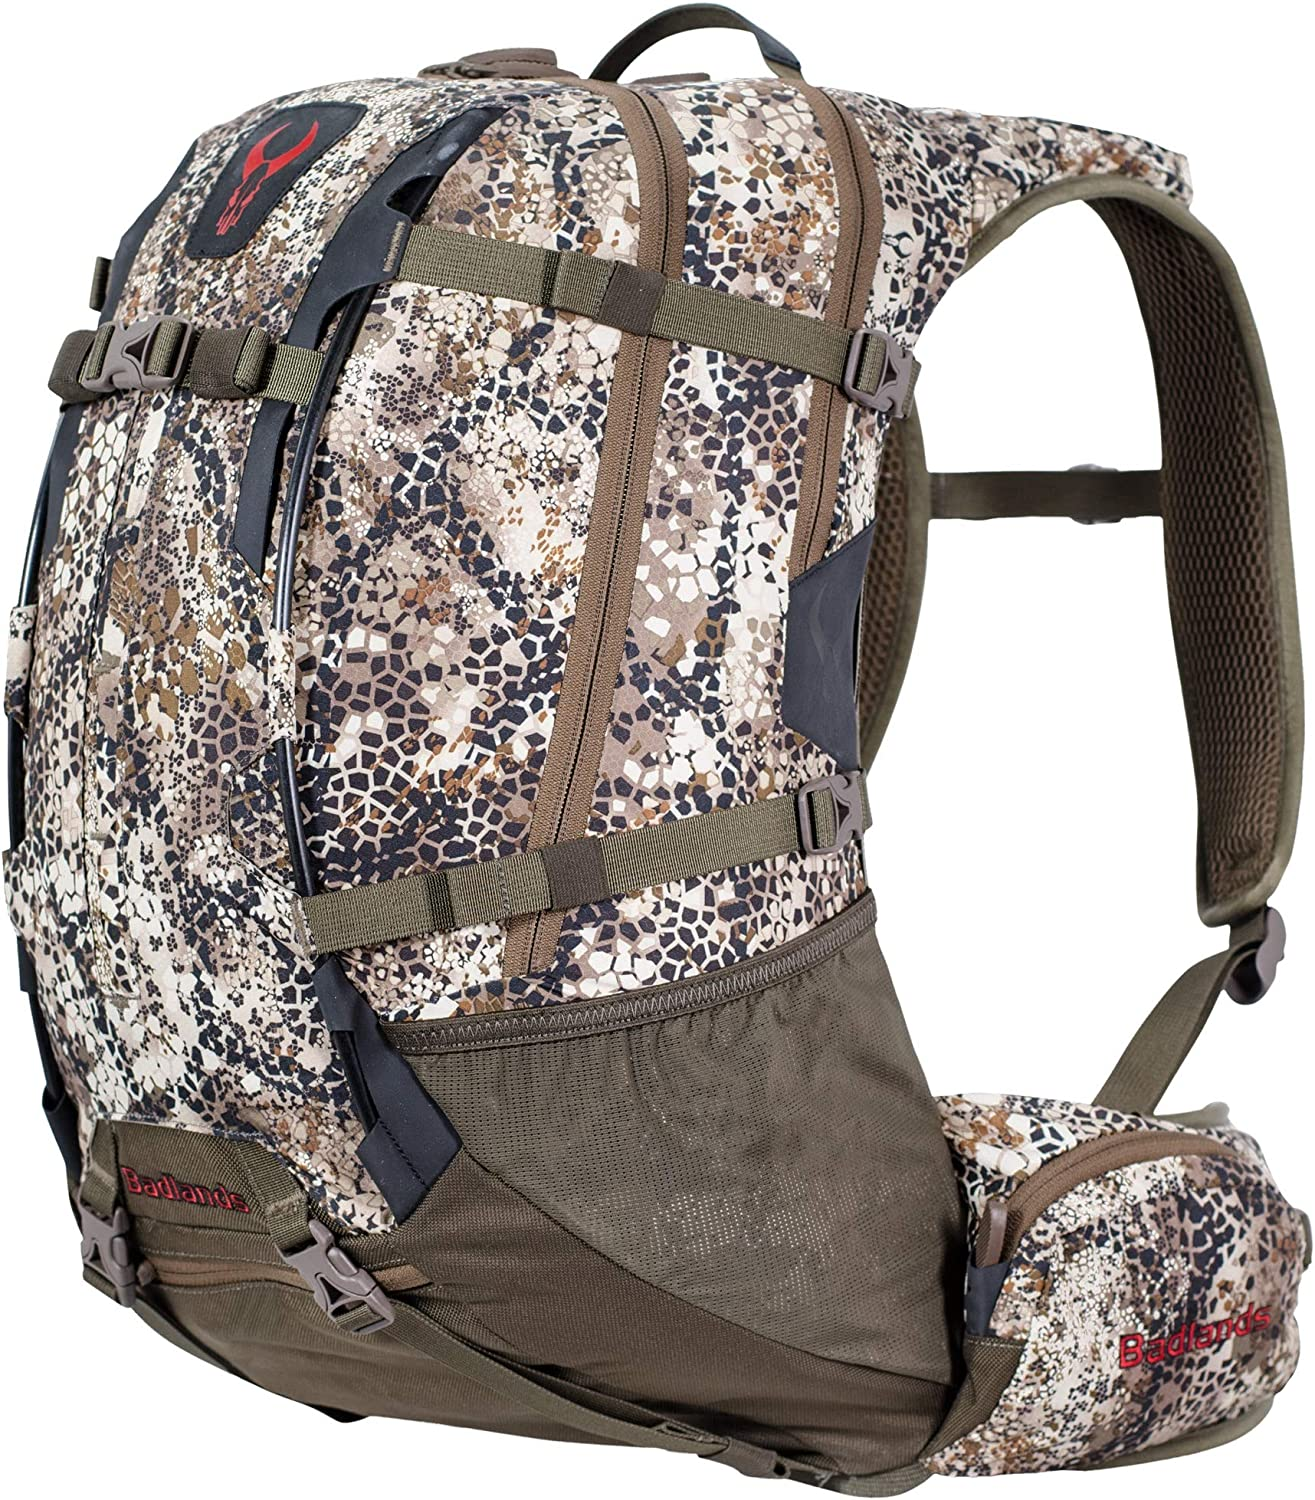 Badlands Dash Camouflage Day Pack for Hunting – Bow, Rifle, and Pistol Compatible